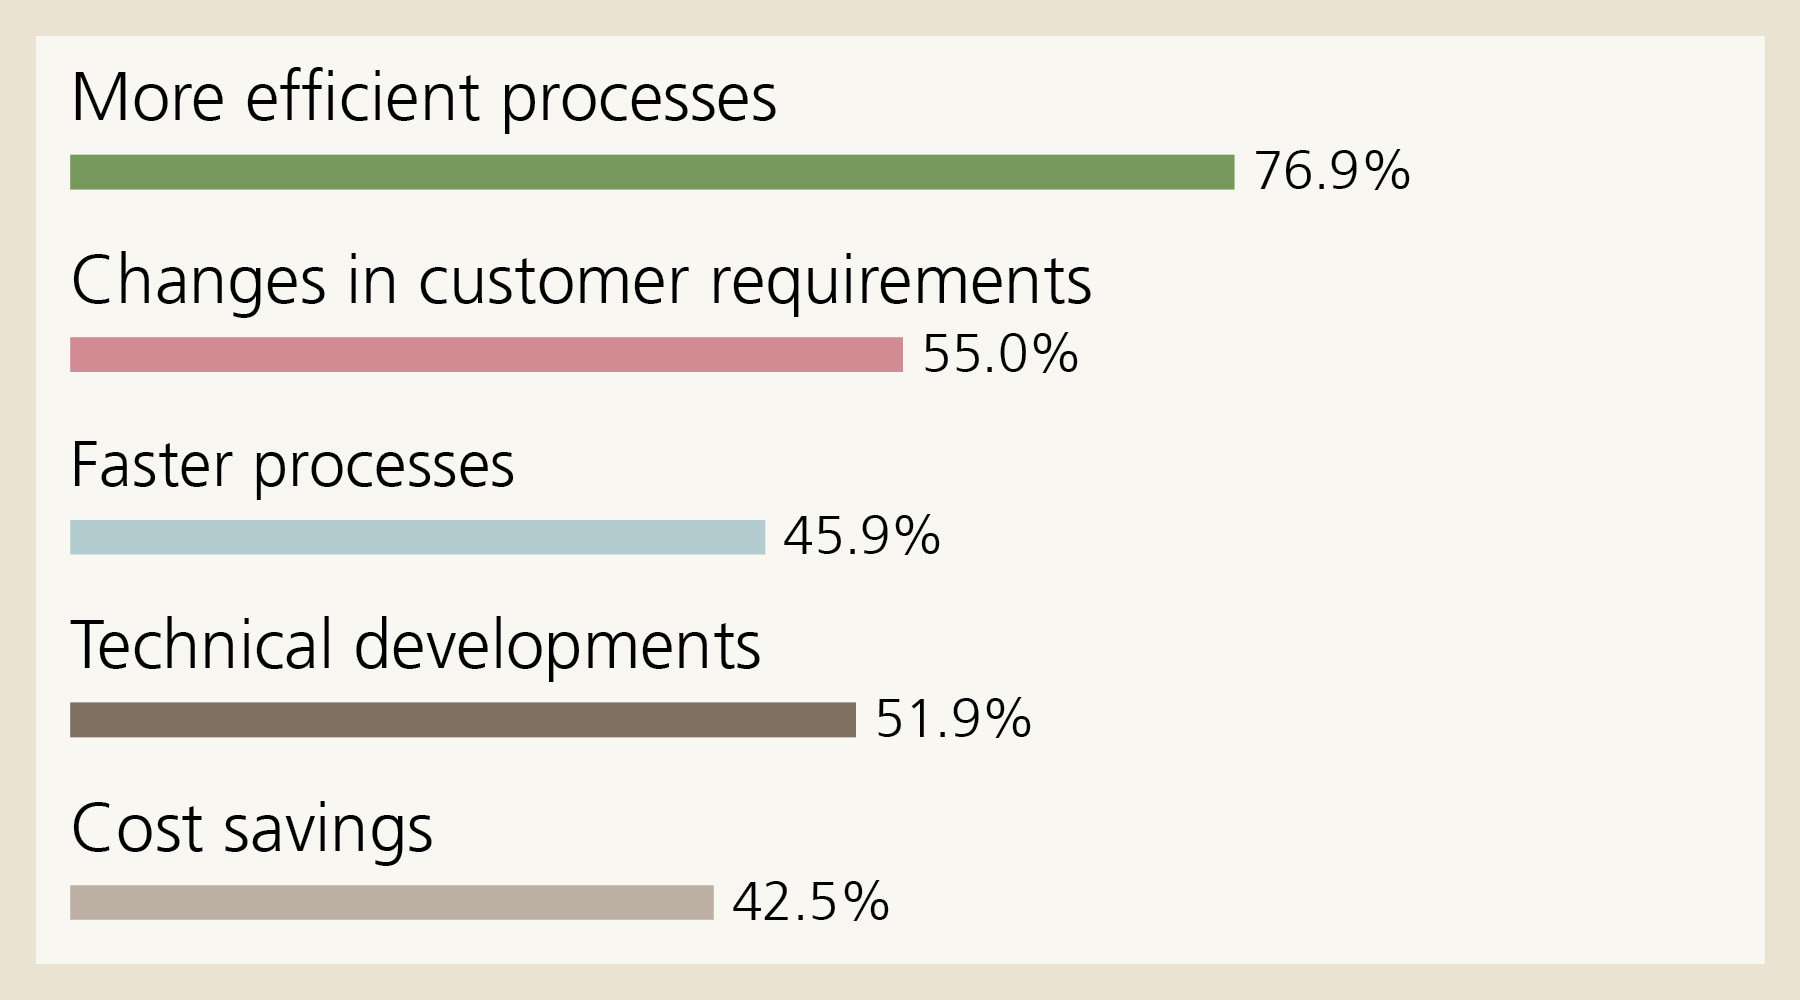 Drivers: These five factors are driving digital transformation most at small companies: More efficient processes 76.9%, Changes in customer requirements 55.0%, Faster processes 45.9%, Technical developments 51.9%, Cost savings 42.5%.